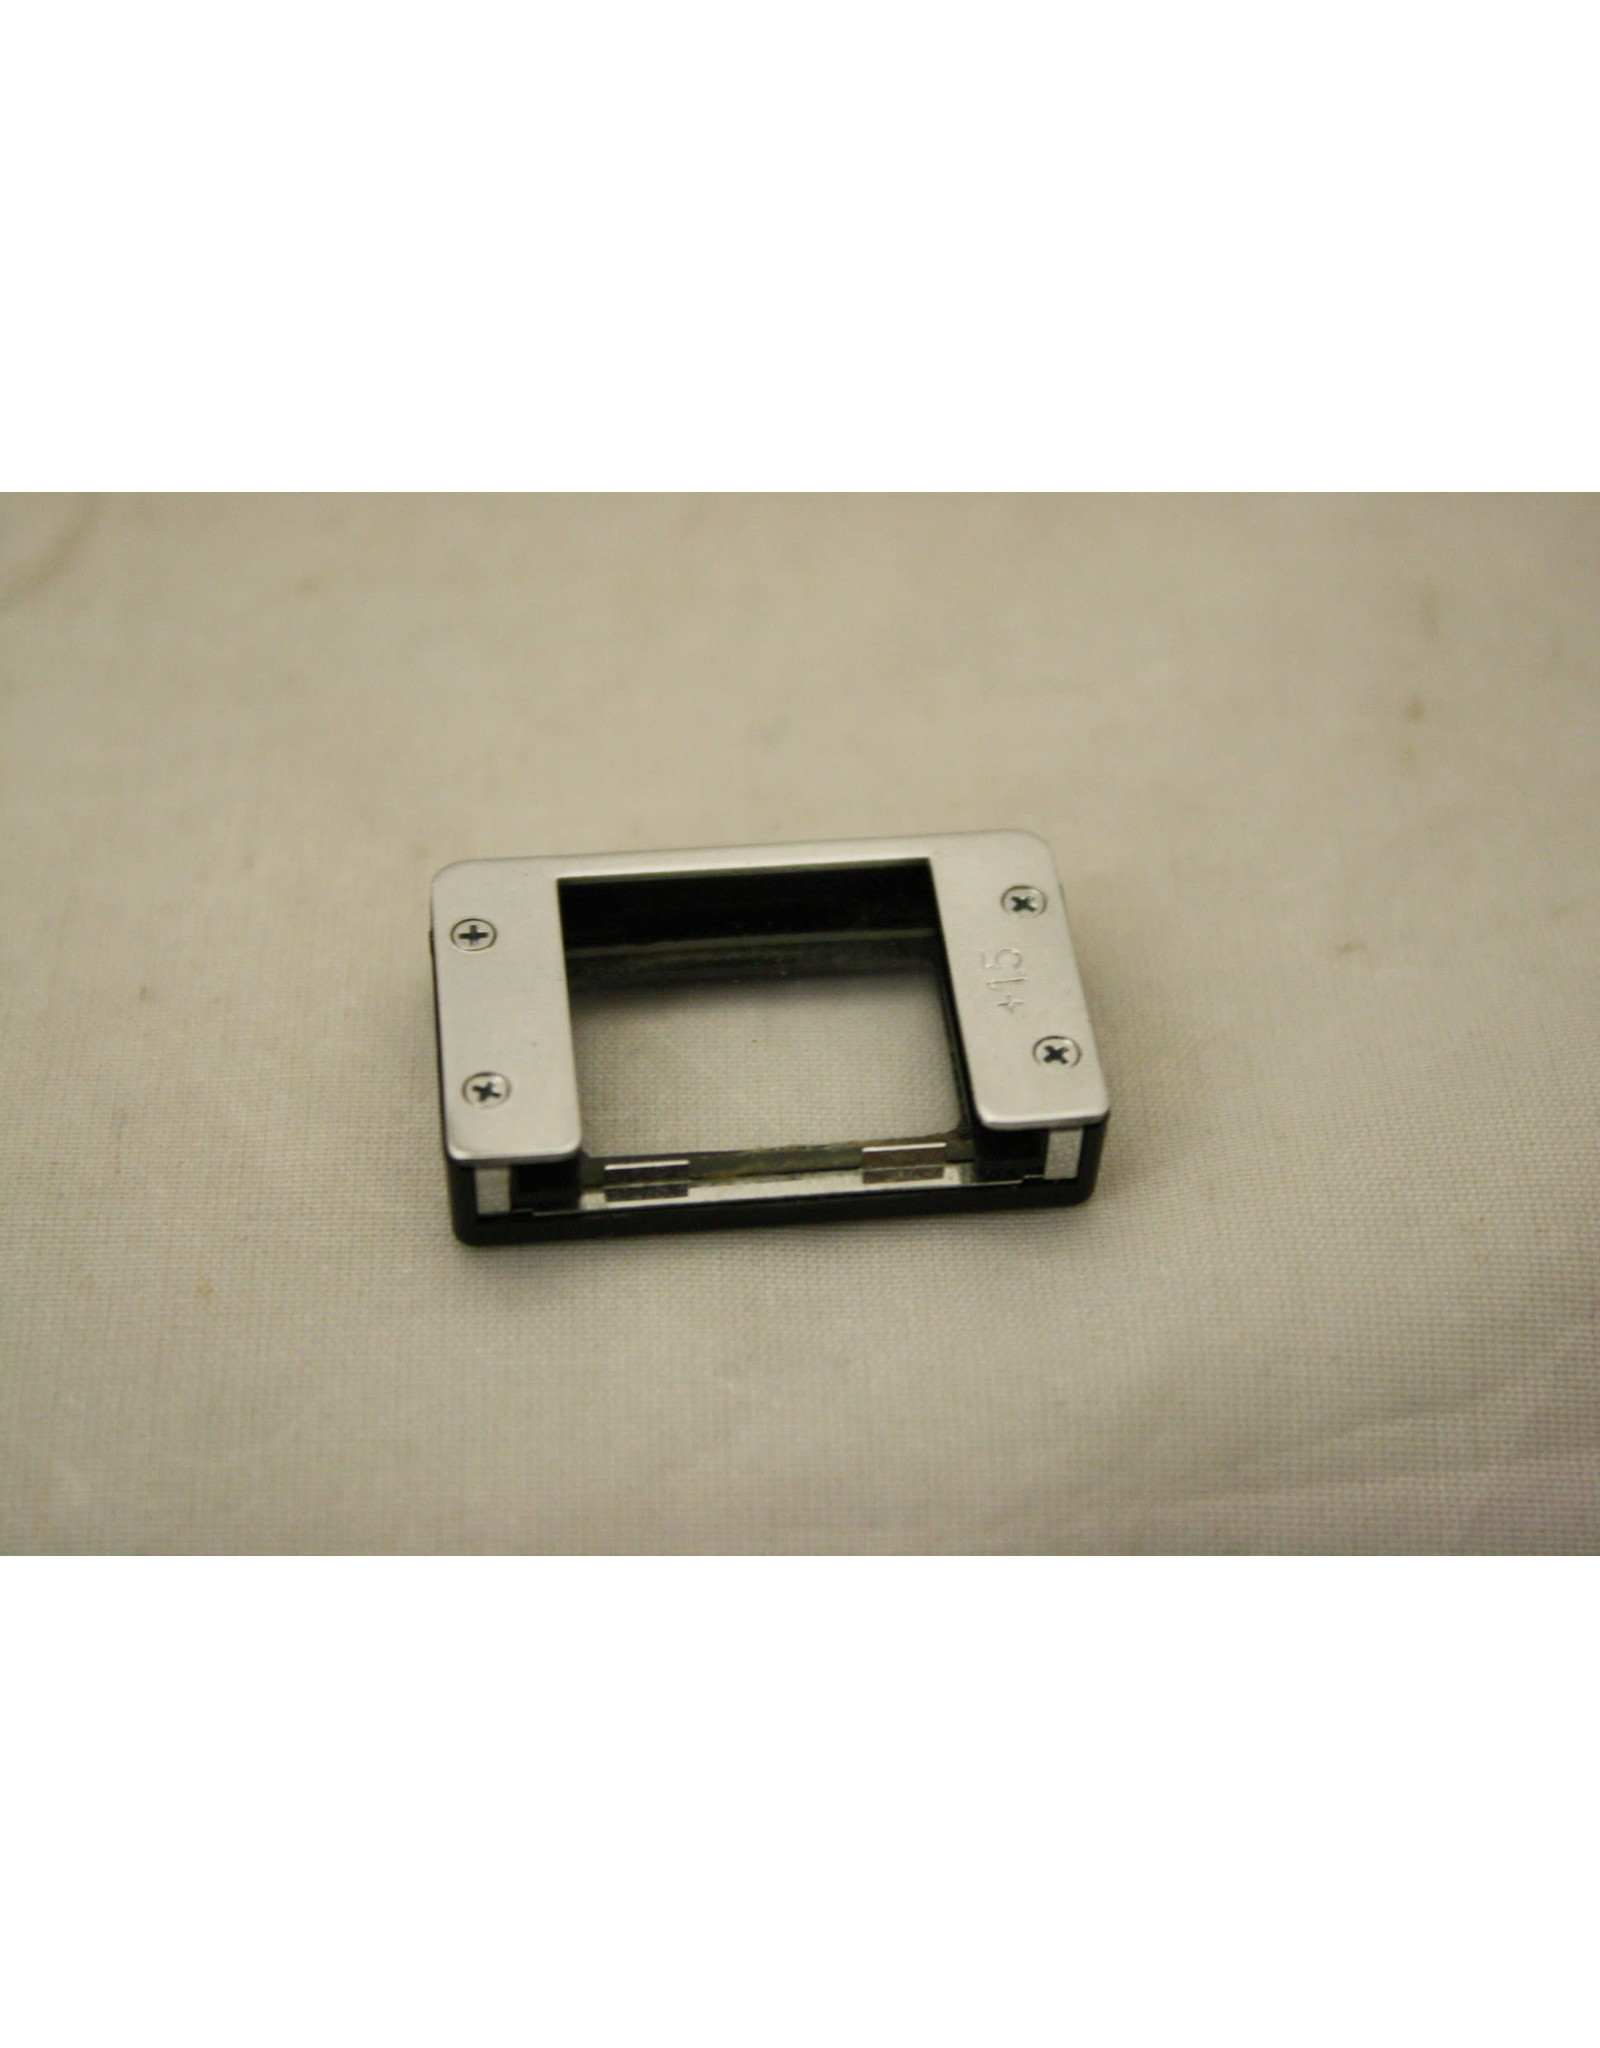 Konica Minolta Canon GENUINE Dioptric Adjustment Lens S +1.5 For AE-1 A1 Vintage Camera Diopter